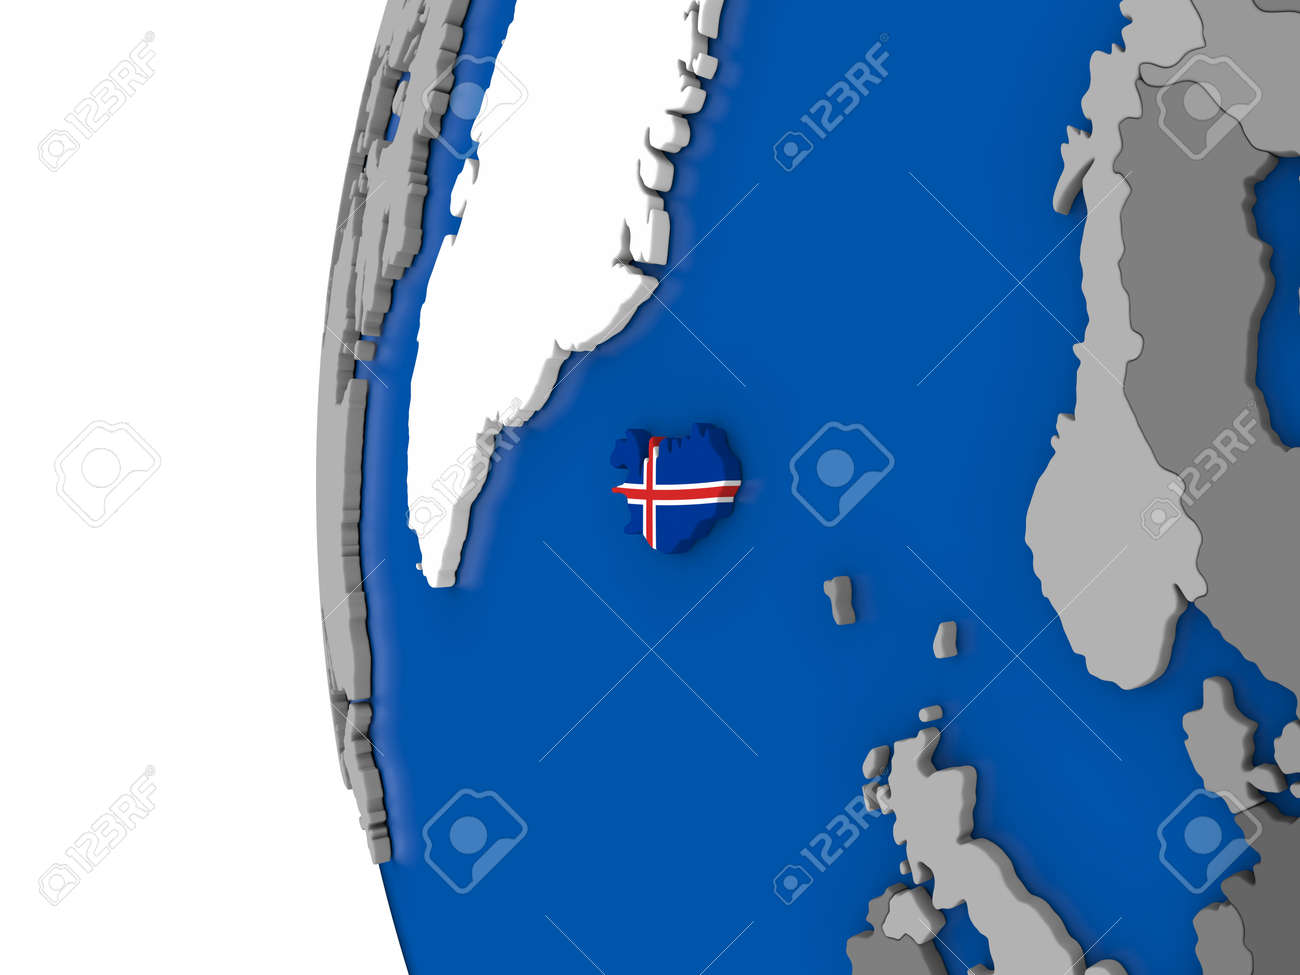 Map of iceland with its flag on globe 3d illustration stock photo illustration map of iceland with its flag on globe 3d illustration gumiabroncs Gallery